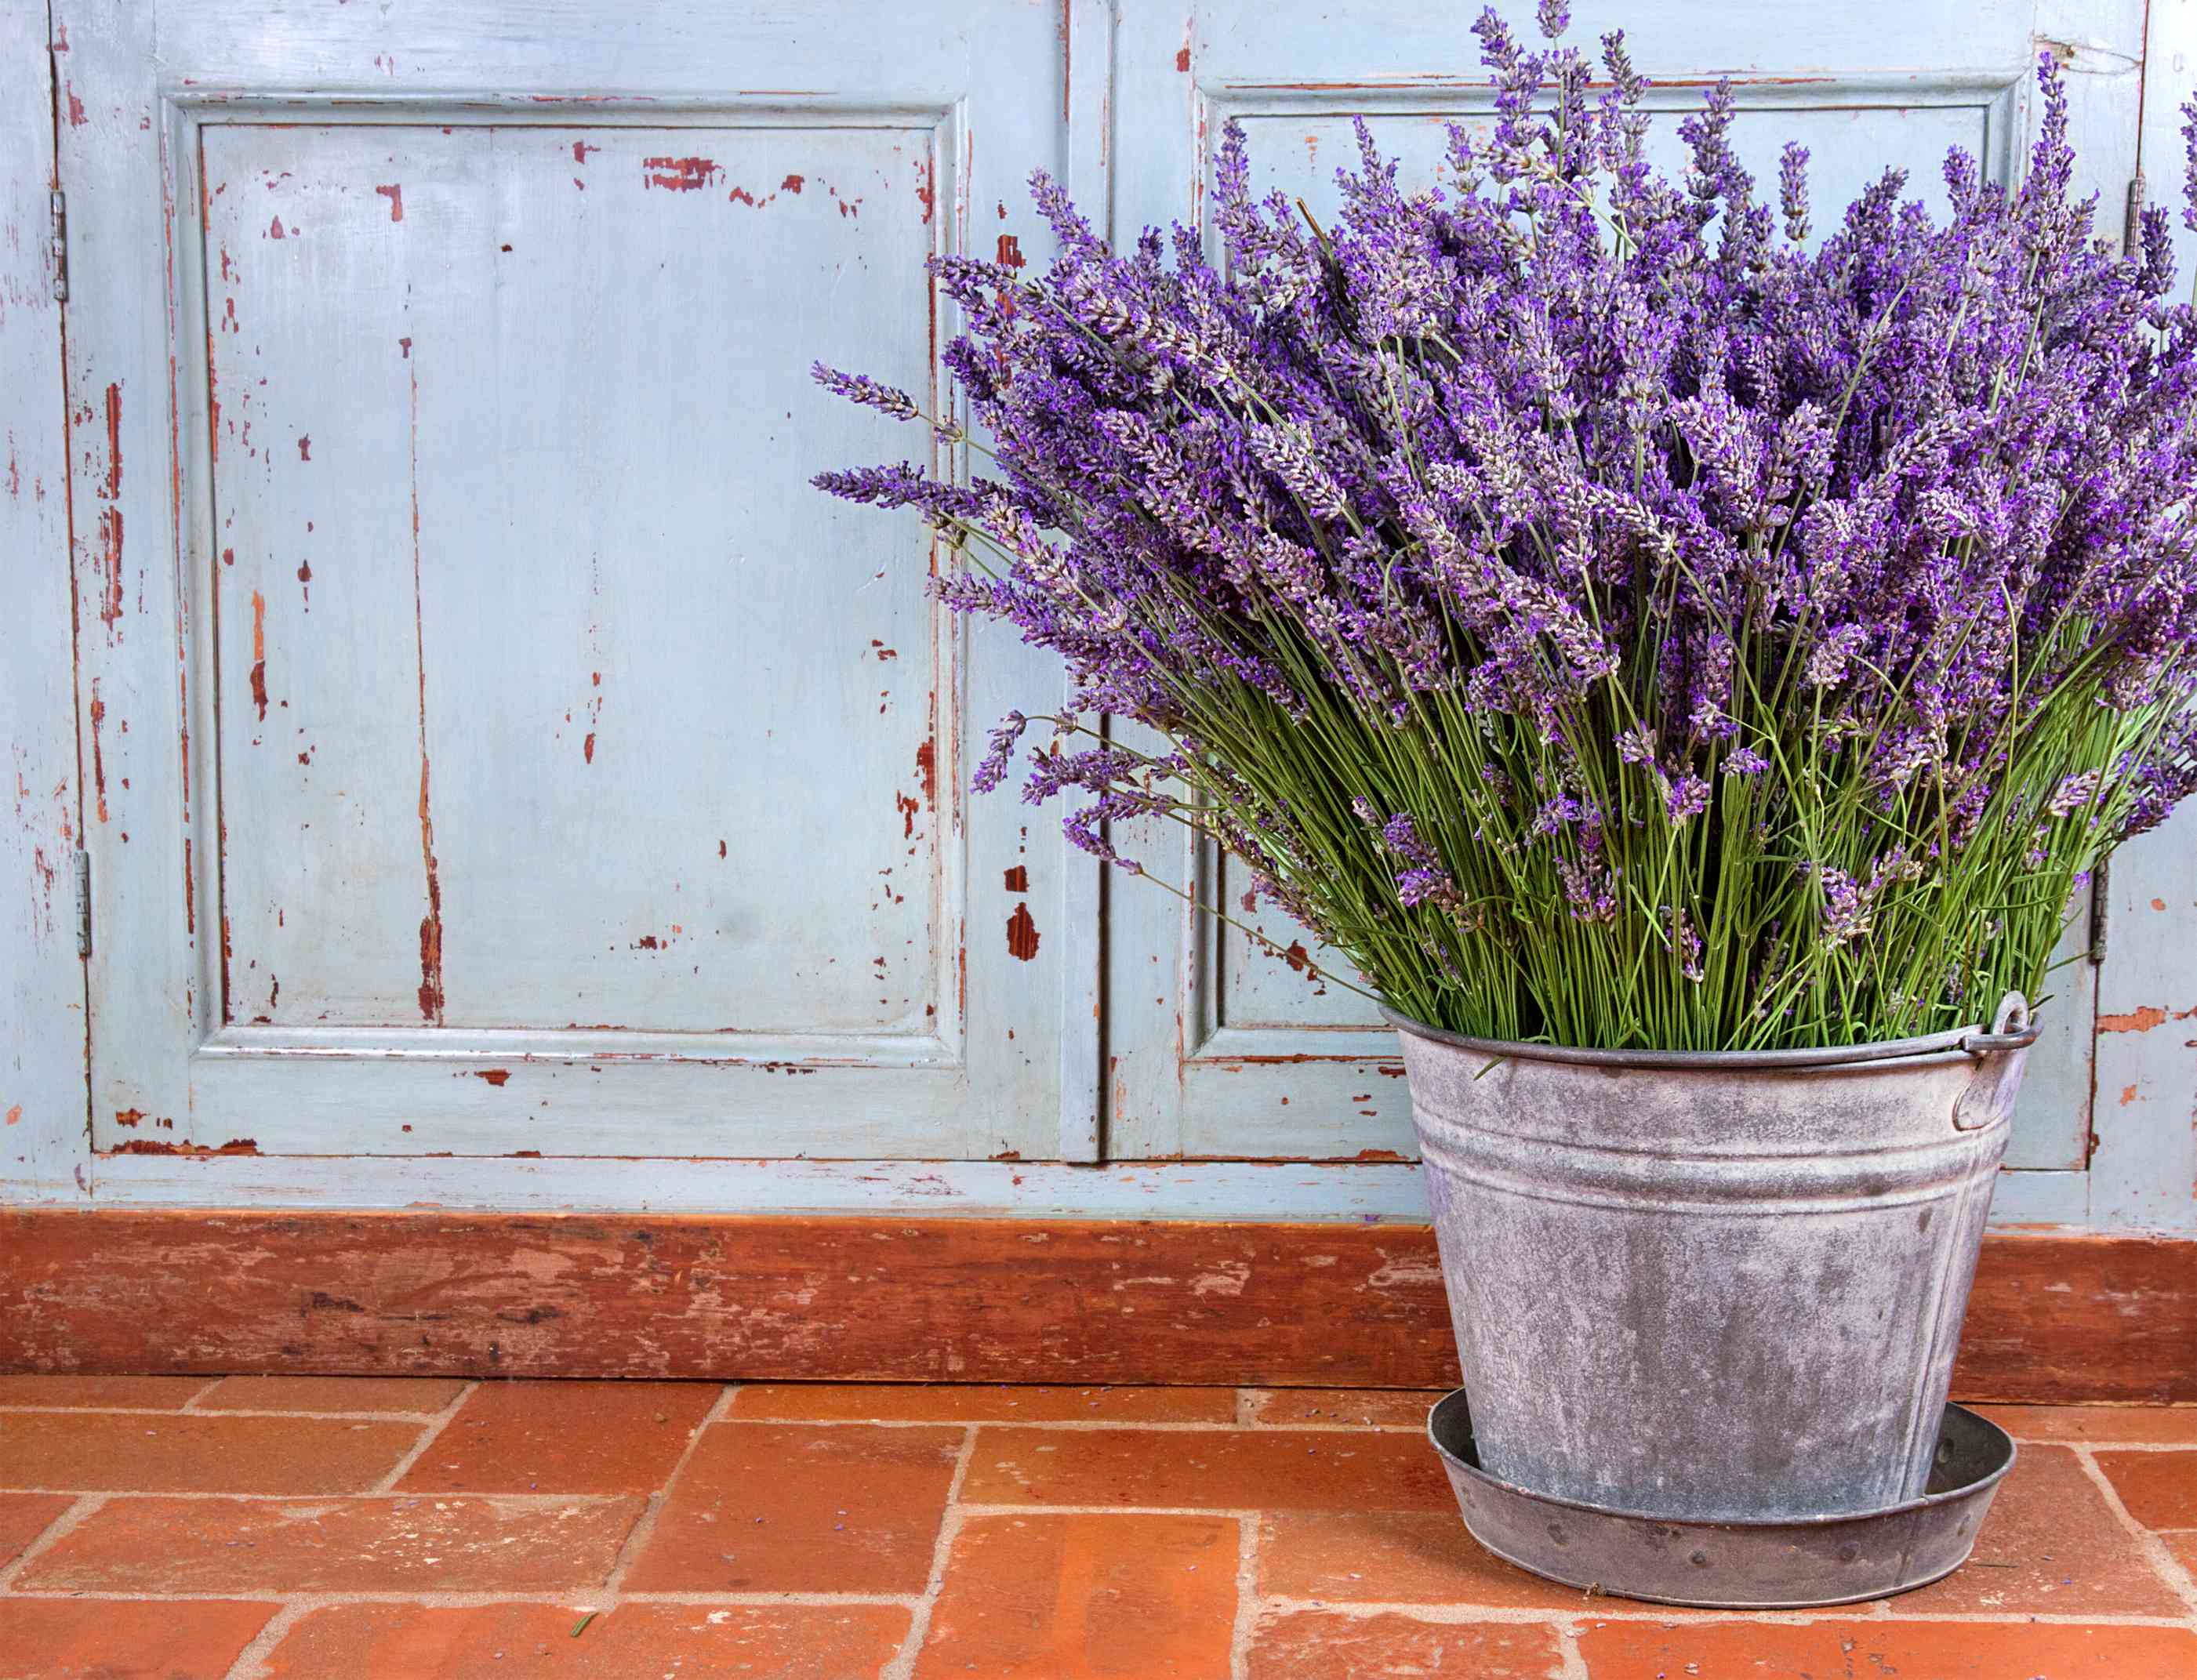 Potted lavender in silver bucket on tiled floor